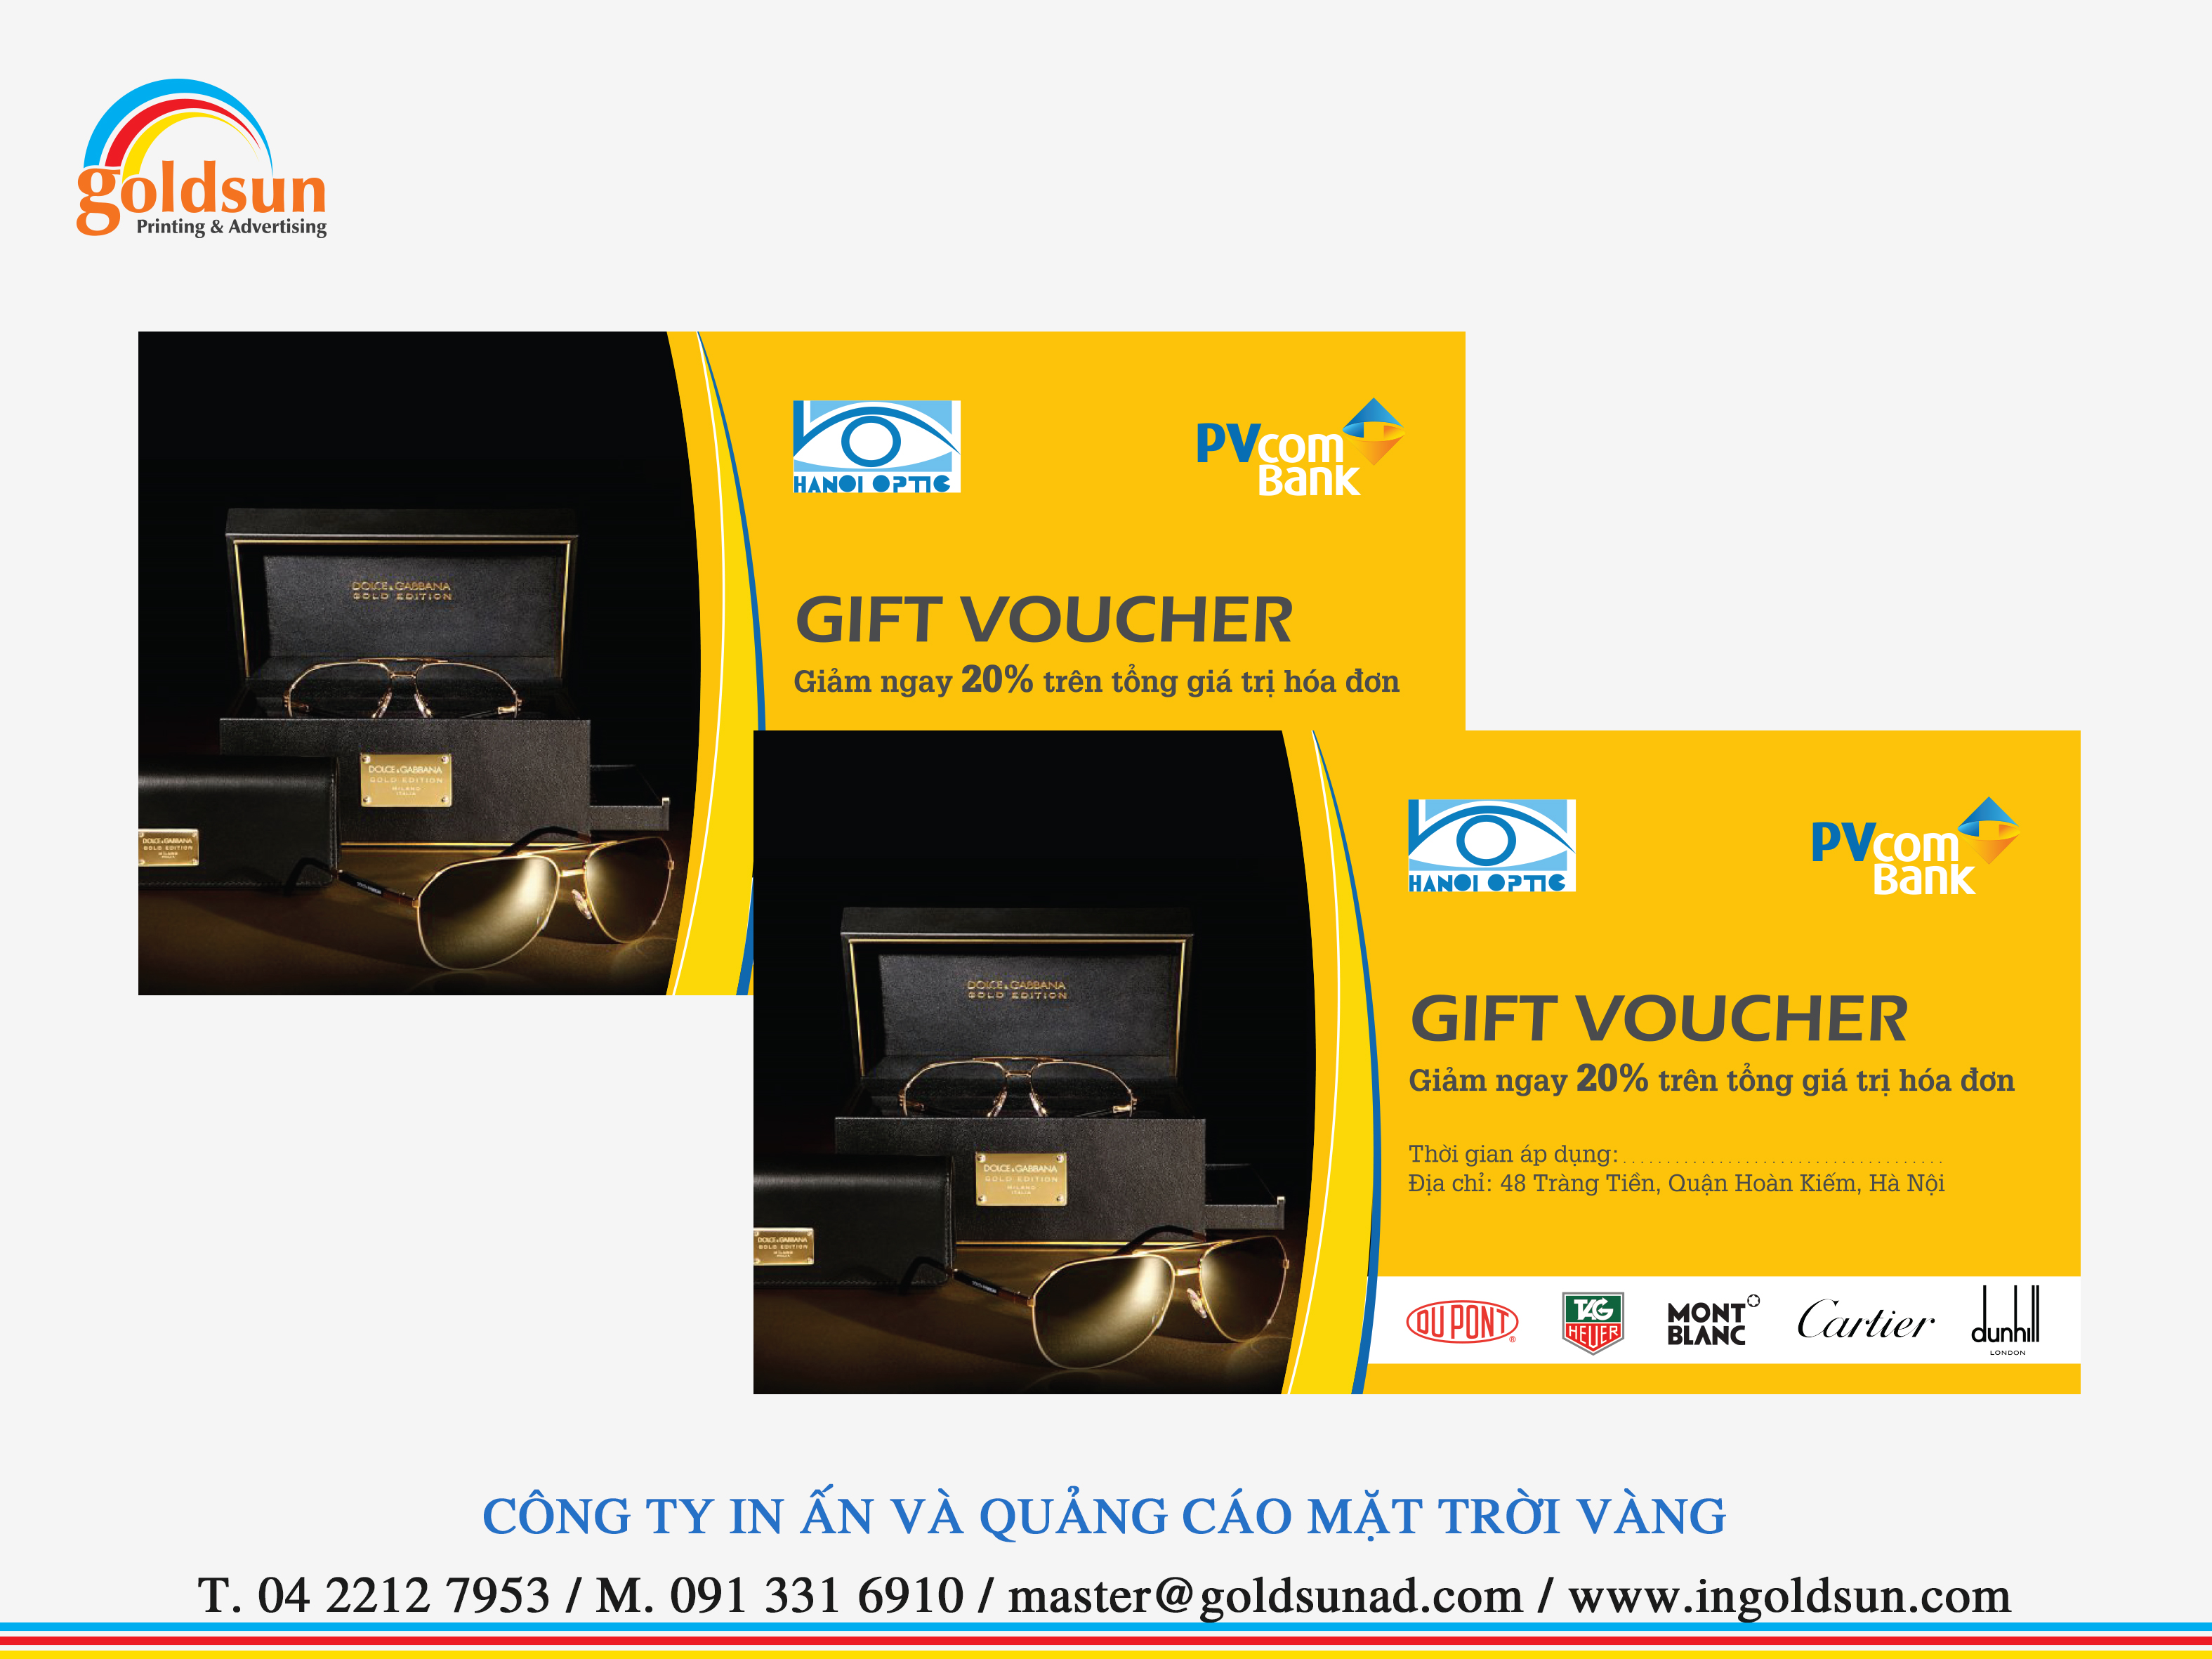 GS - Voucher PVcom bank